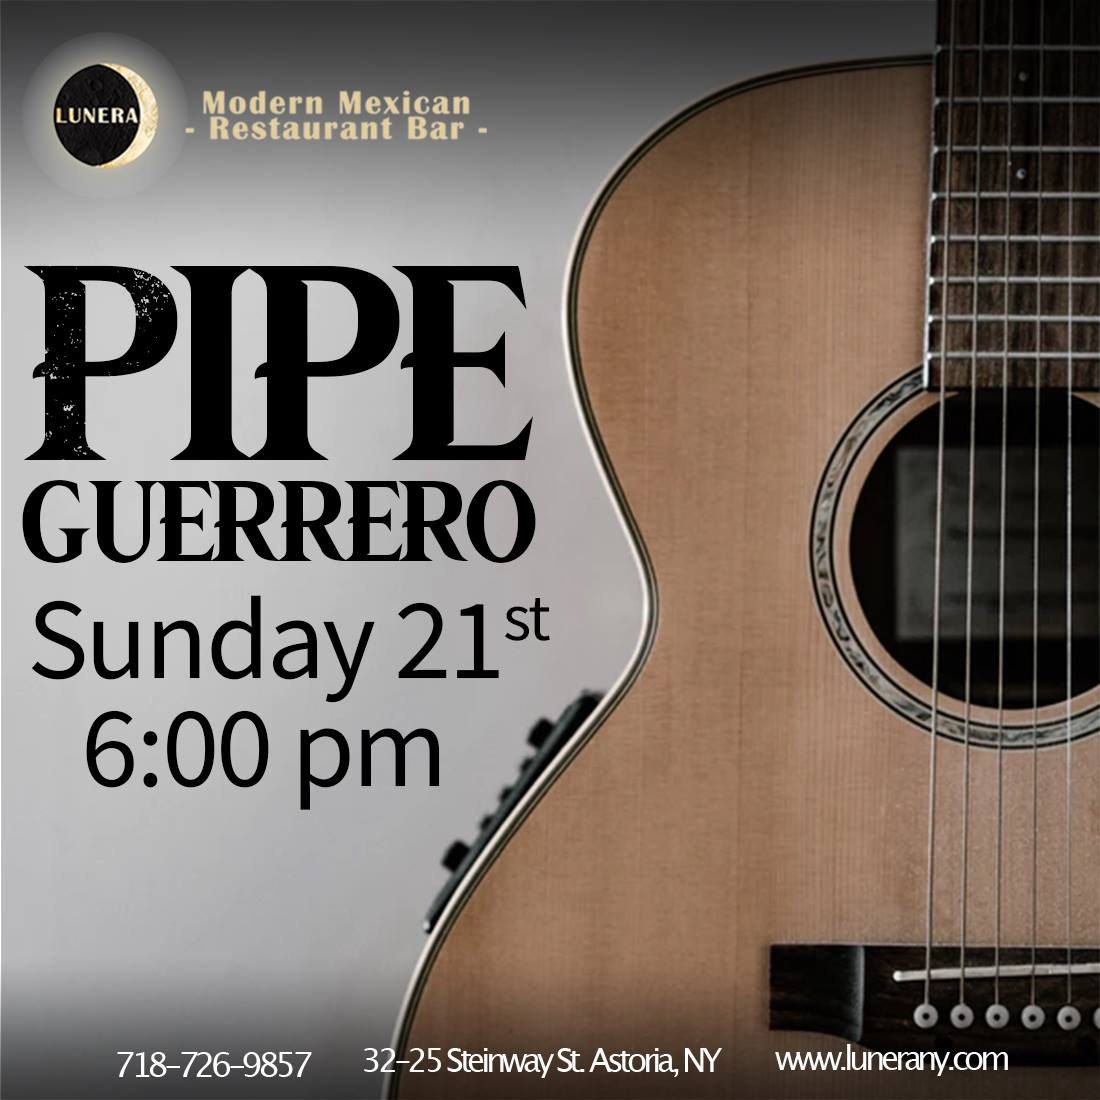 #SundayMotivation 😜✨🍹 and #PipeGuerrero Can't miss it! - #LuneraRestaurant #today #LiveMusic #Fun #Food #Drinks #musician #dance #musicismylife #musicianlife #sing #love #enjoy #drink #eat #acoustic